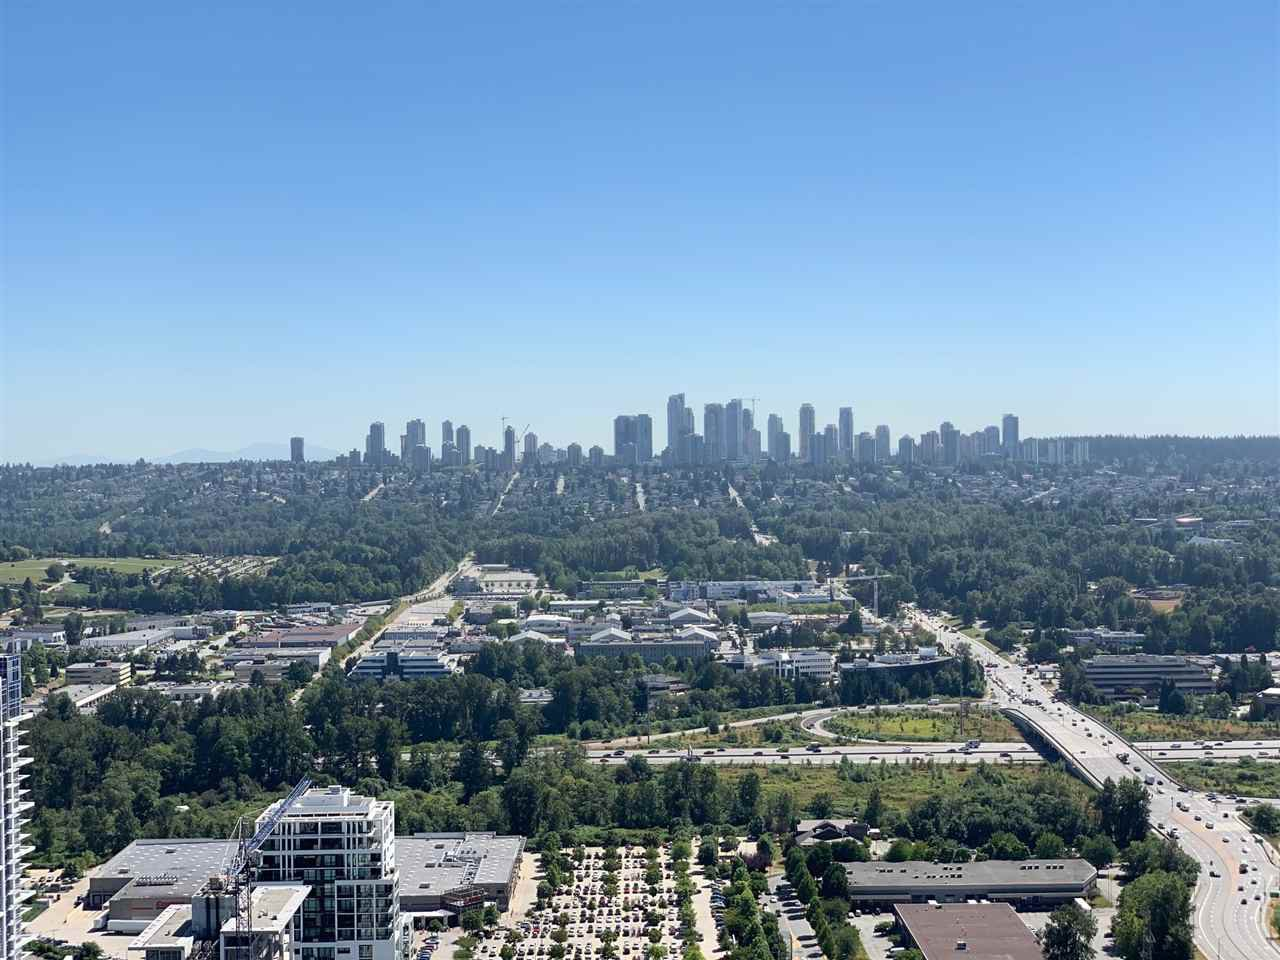 """Main Photo: 4903 1955 ALPHA Way in Burnaby: Brentwood Park Condo for sale in """"AMAZING BRENTWOOD"""" (Burnaby North)  : MLS®# R2494602"""